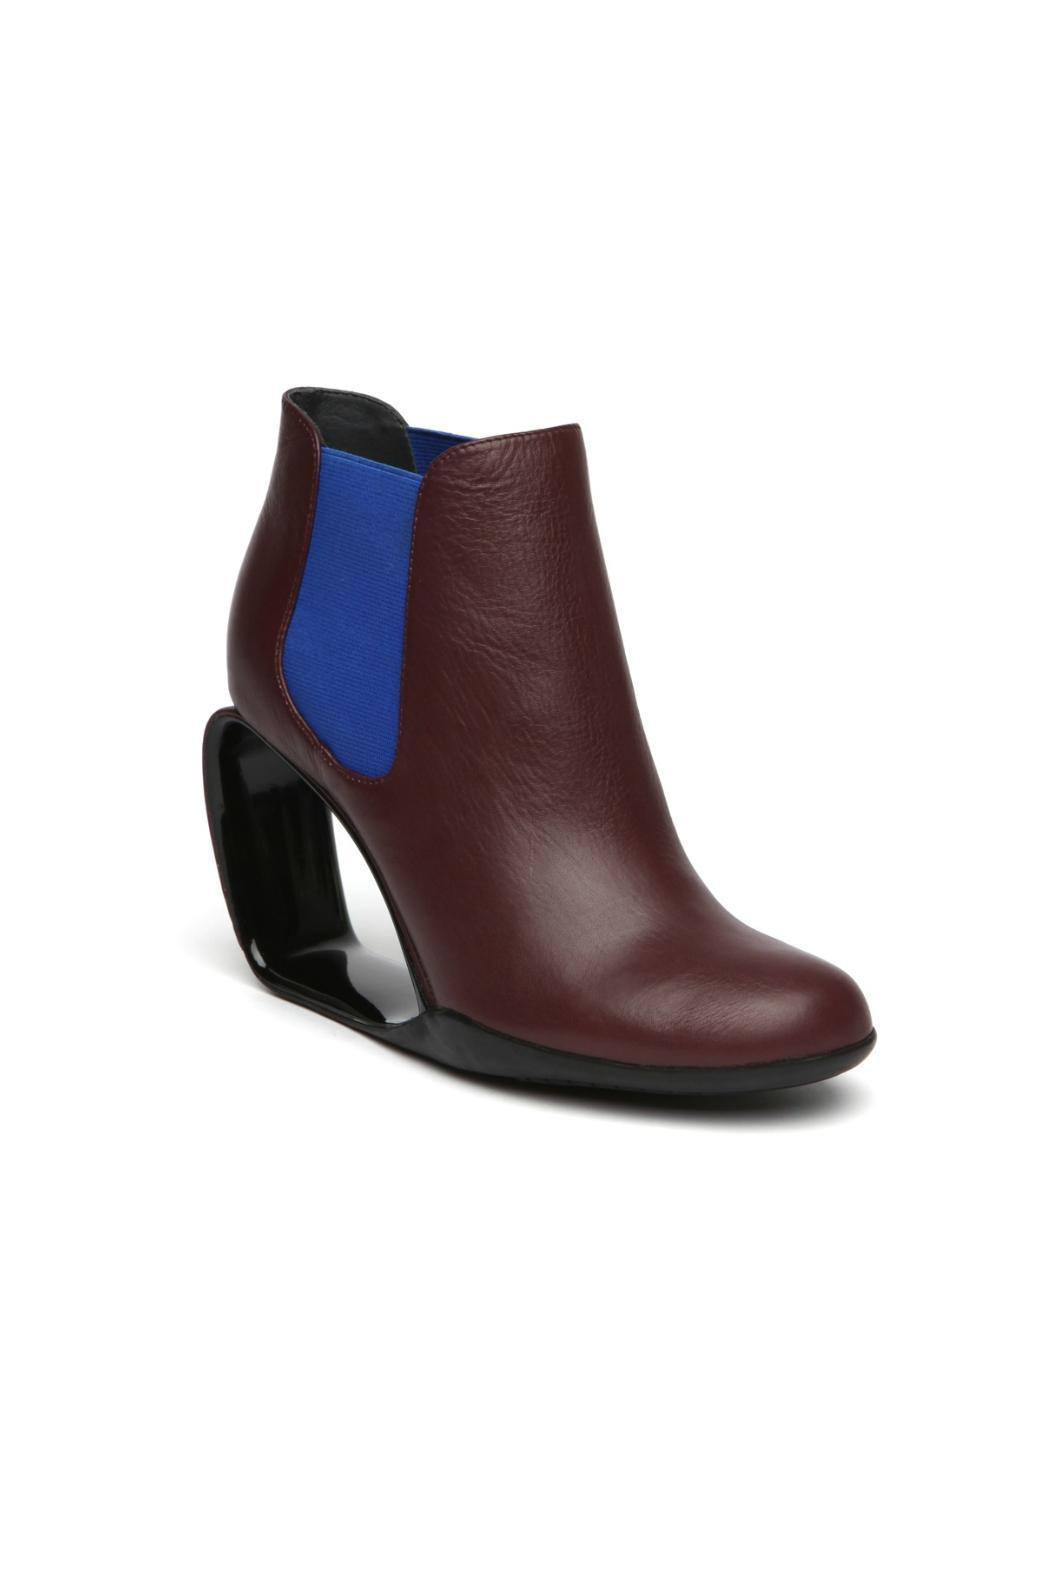 United Nude Burgundy Leather Bootie - Front Full Image